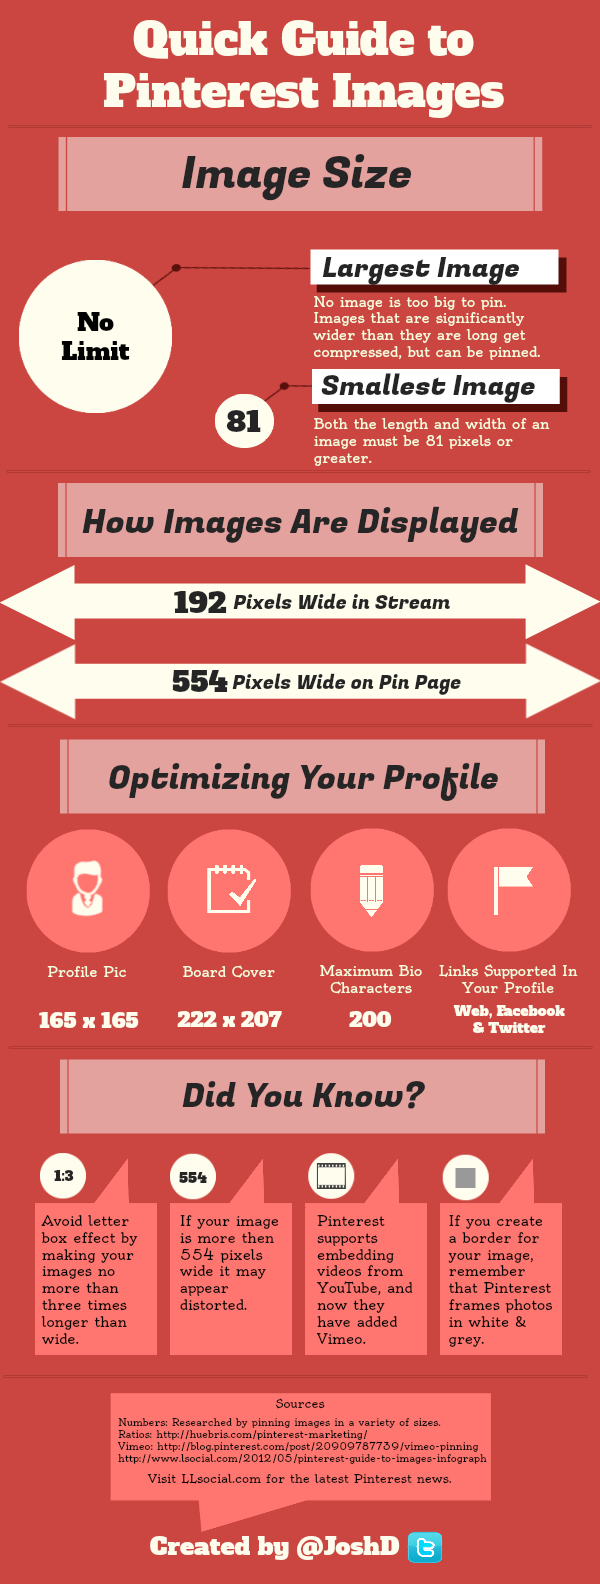 Quick Guide to Pinterest Images